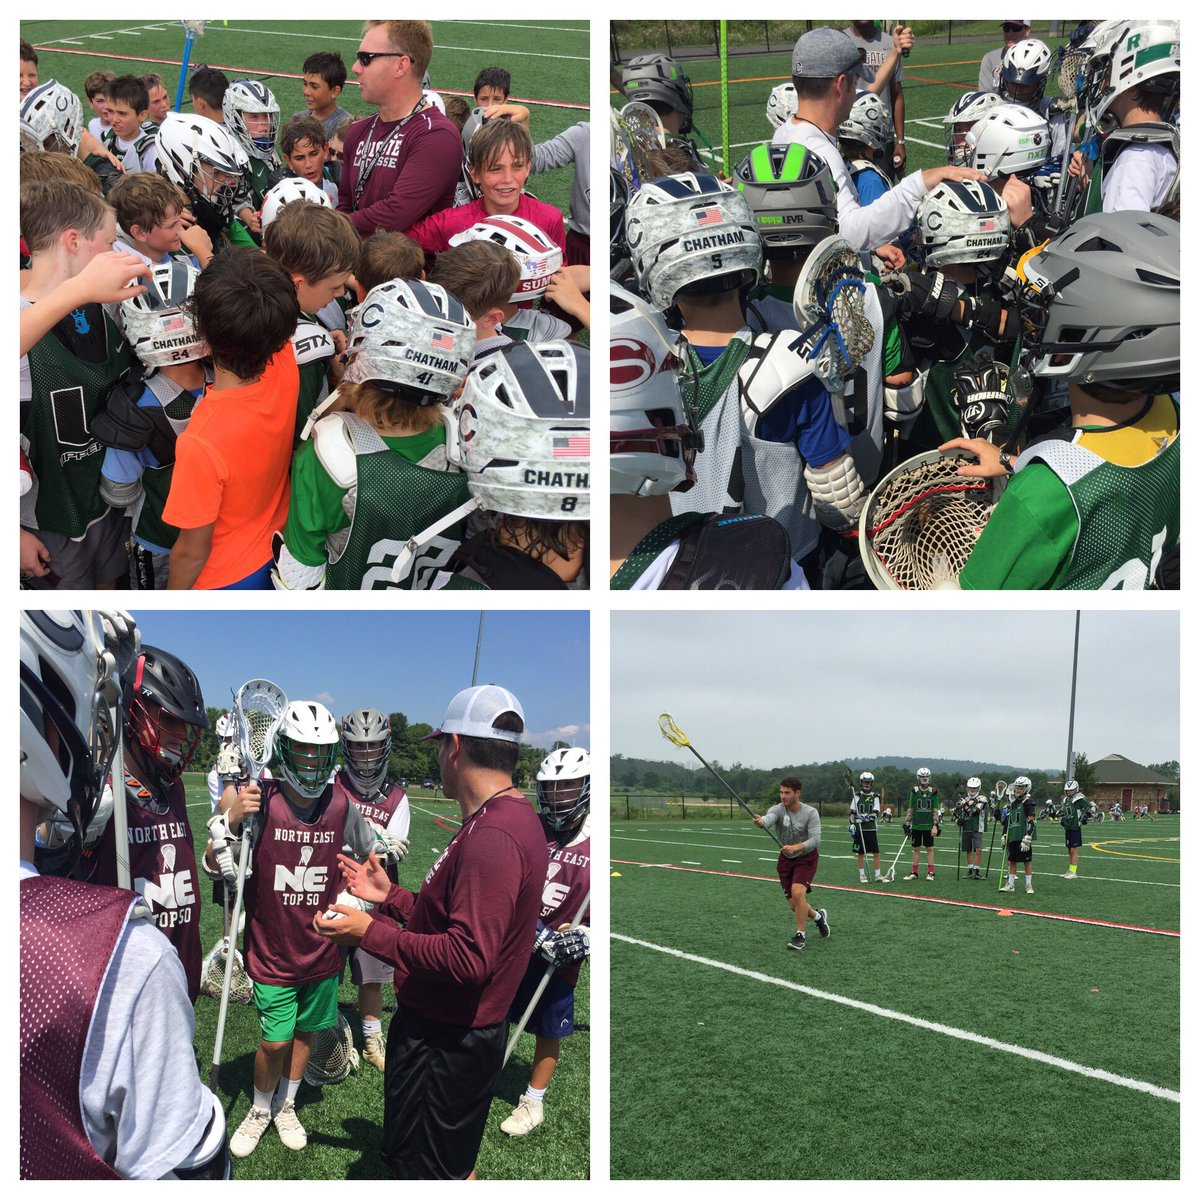 Thank you @LaxcoachMike @abbottlax Coach Hall and Coach Del Monico for an amazing NE Top 50 experience! #UL #BestTheBest @ColgateLacrosse<br>http://pic.twitter.com/h53oazbGrF